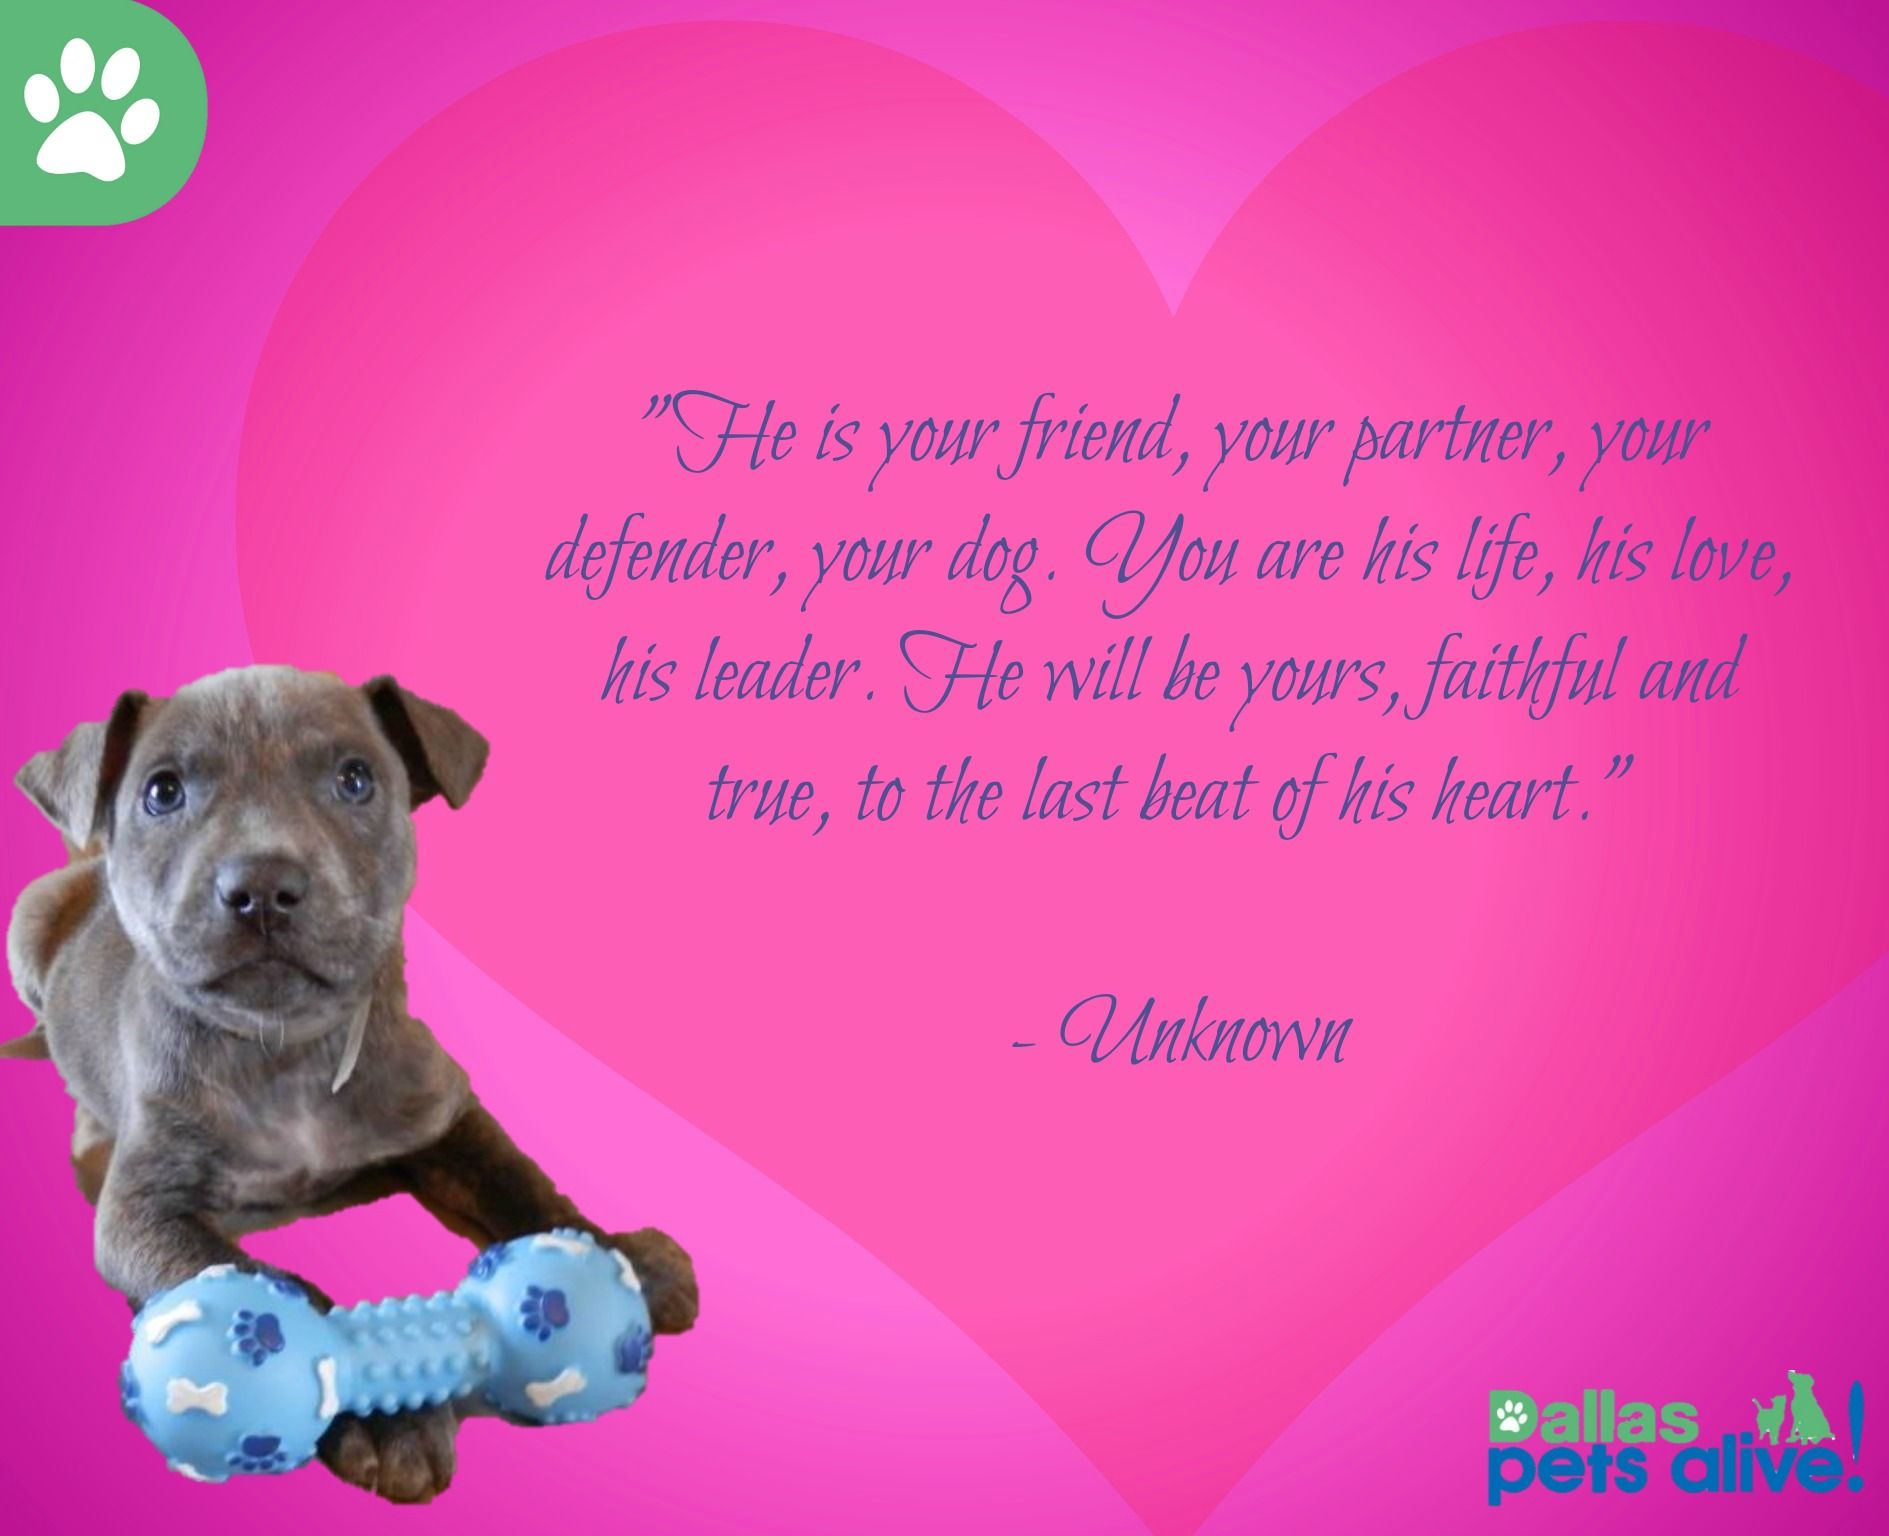 Fall in love with your new best friend today! Pets, Some